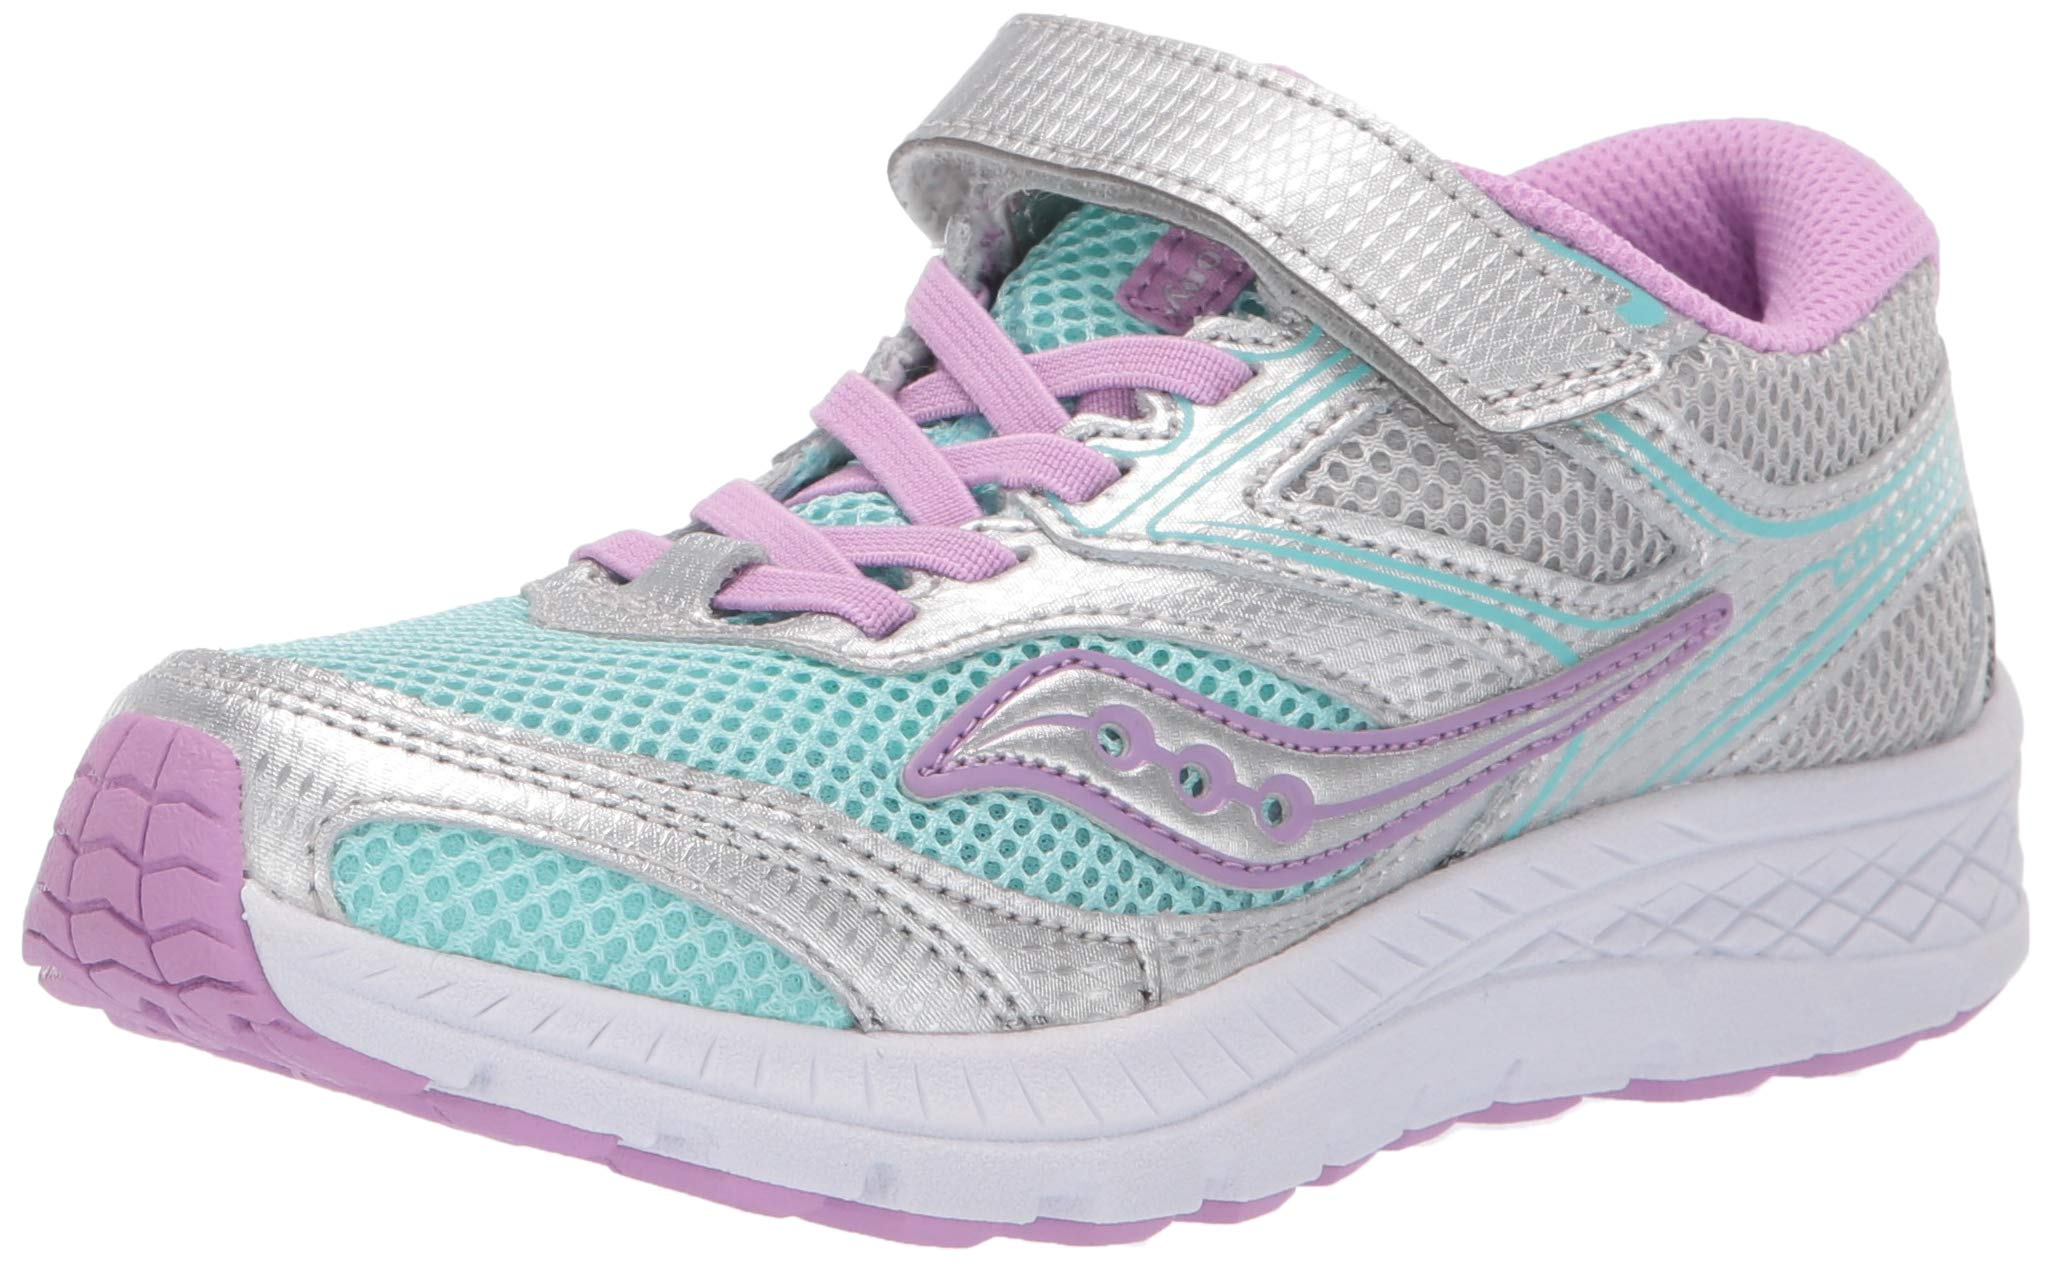 Saucony Unisex Cohesion 12 A/C Sneaker, Turquoise/Silver, 1.0 Wide US Little Kid